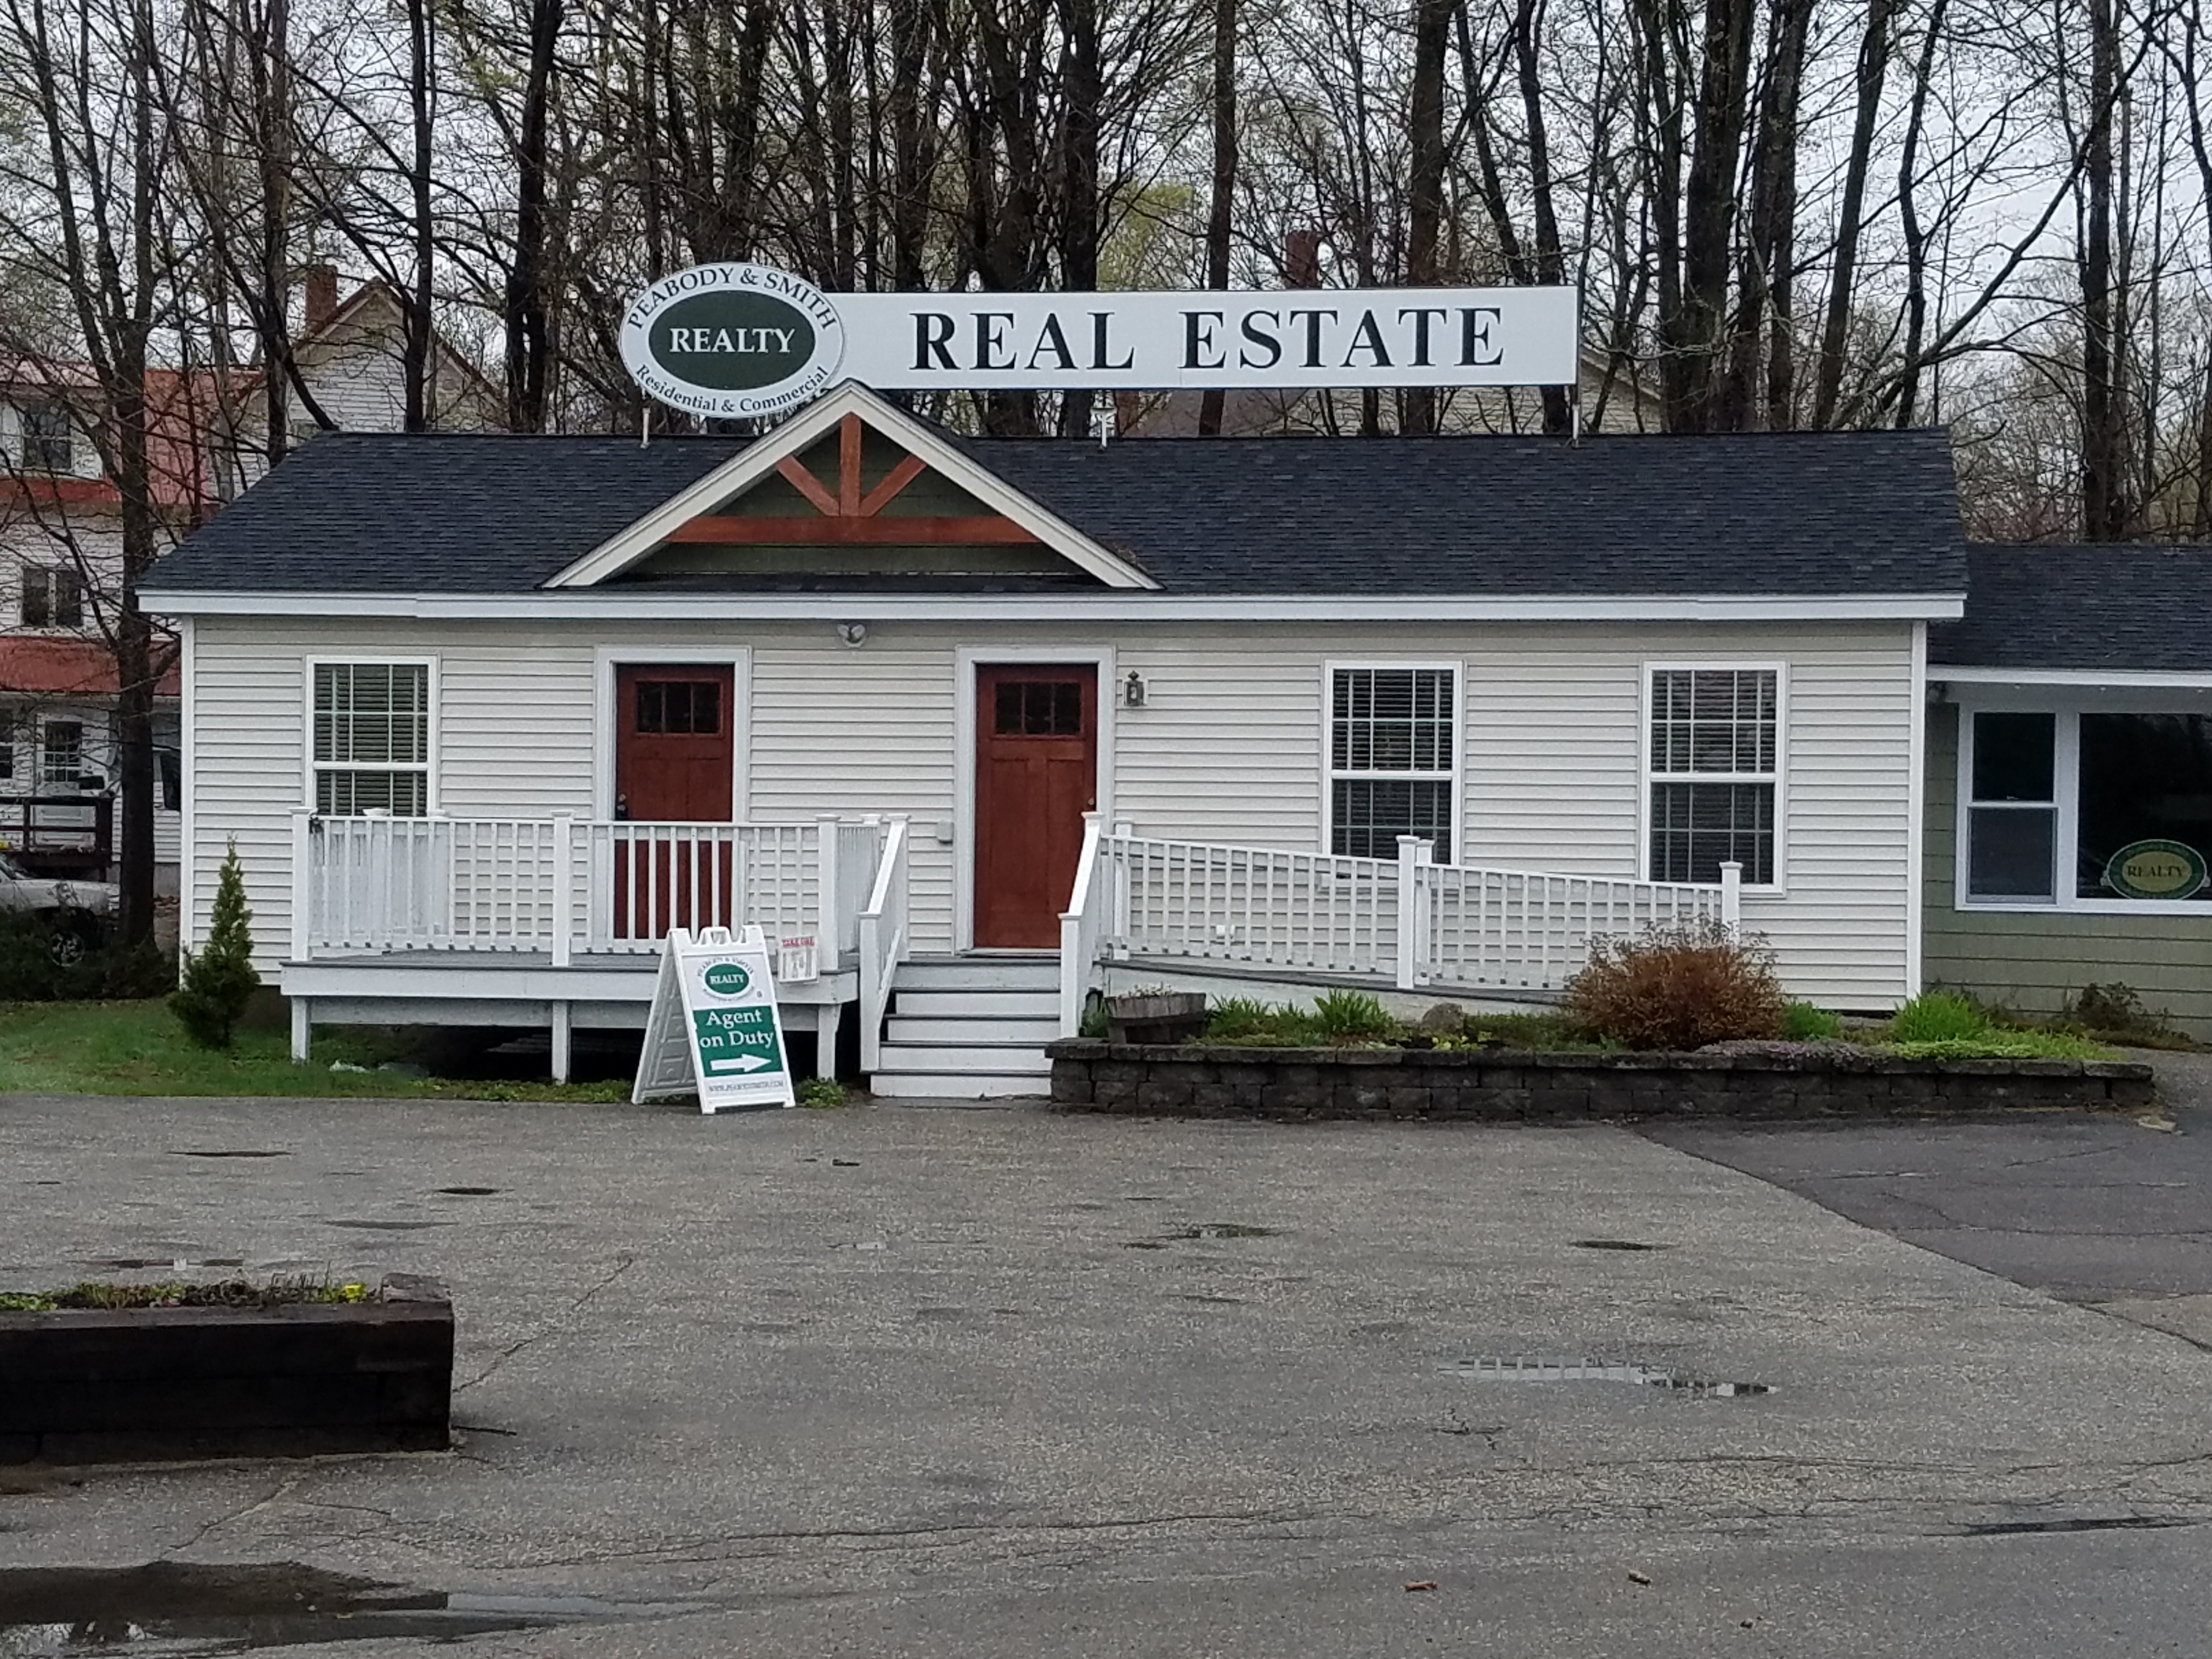 Littleton Commercial Real Estate For Sale And Lease Autos Post